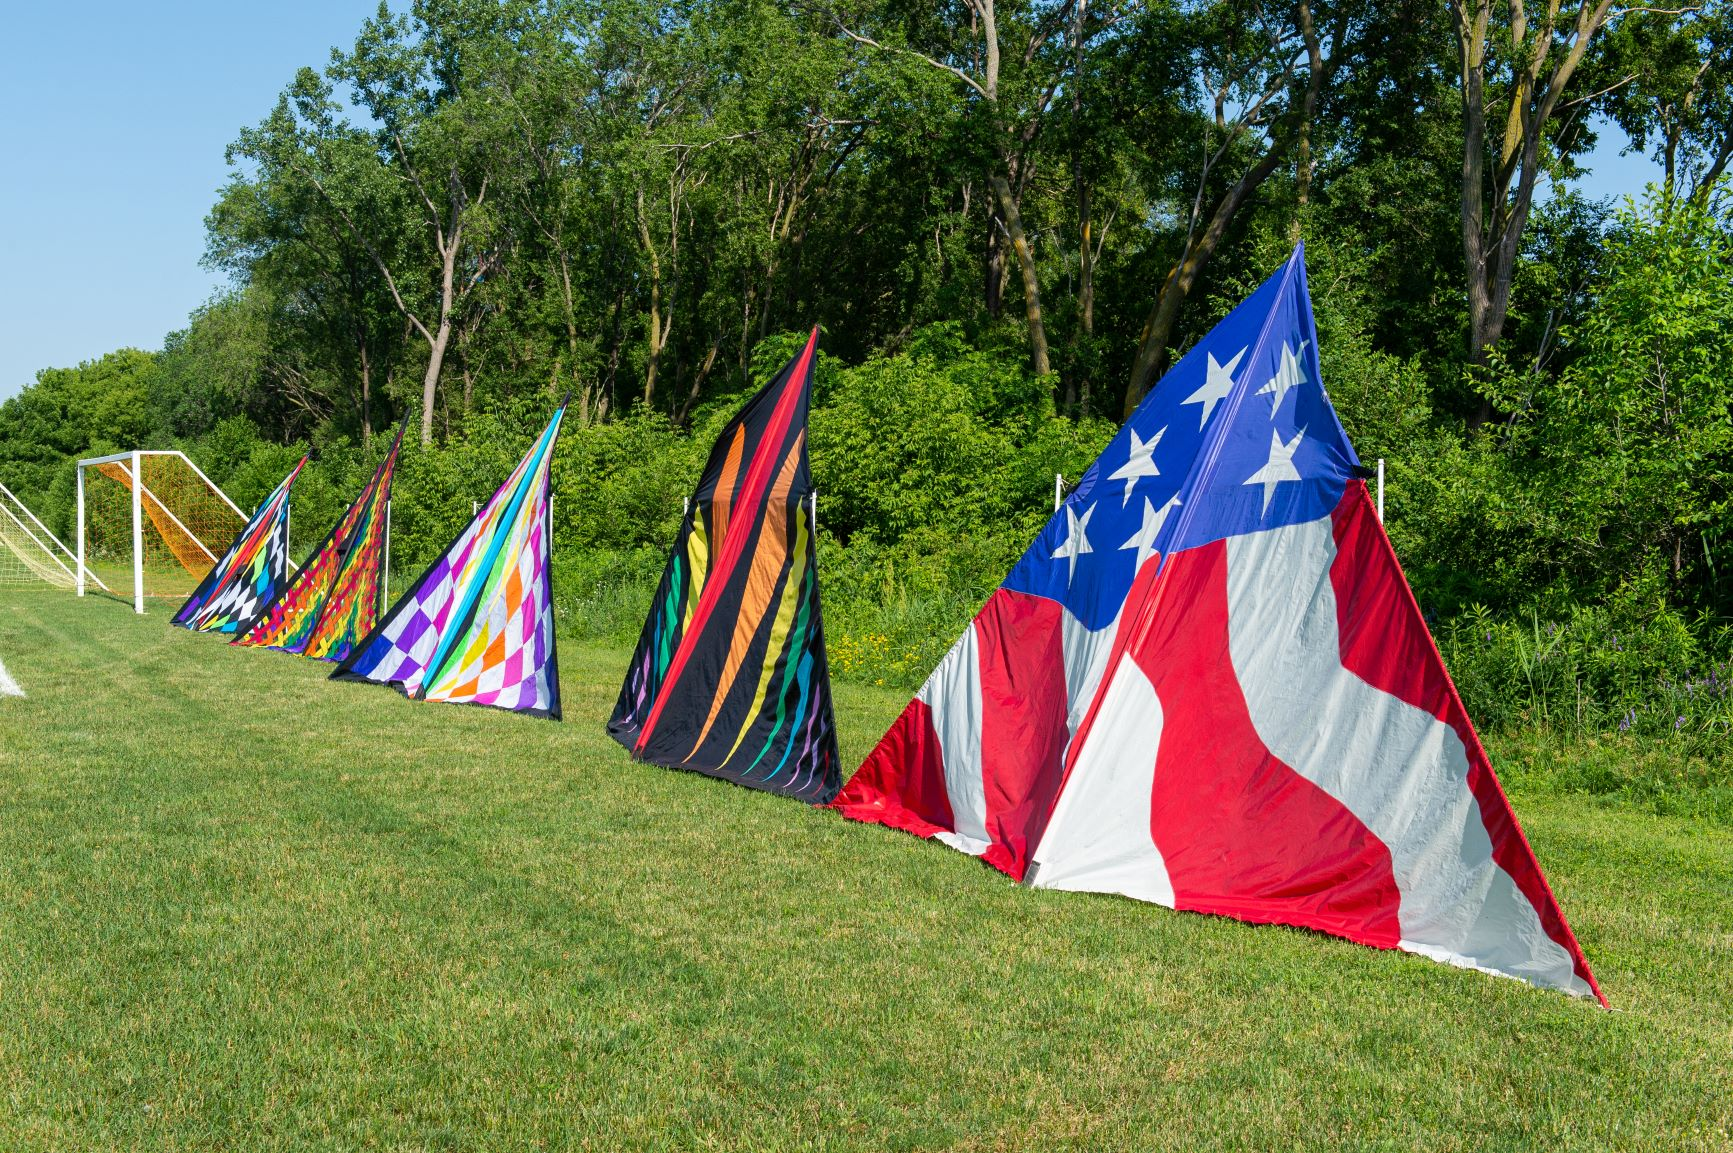 Four large triangle kites laying in green grass.